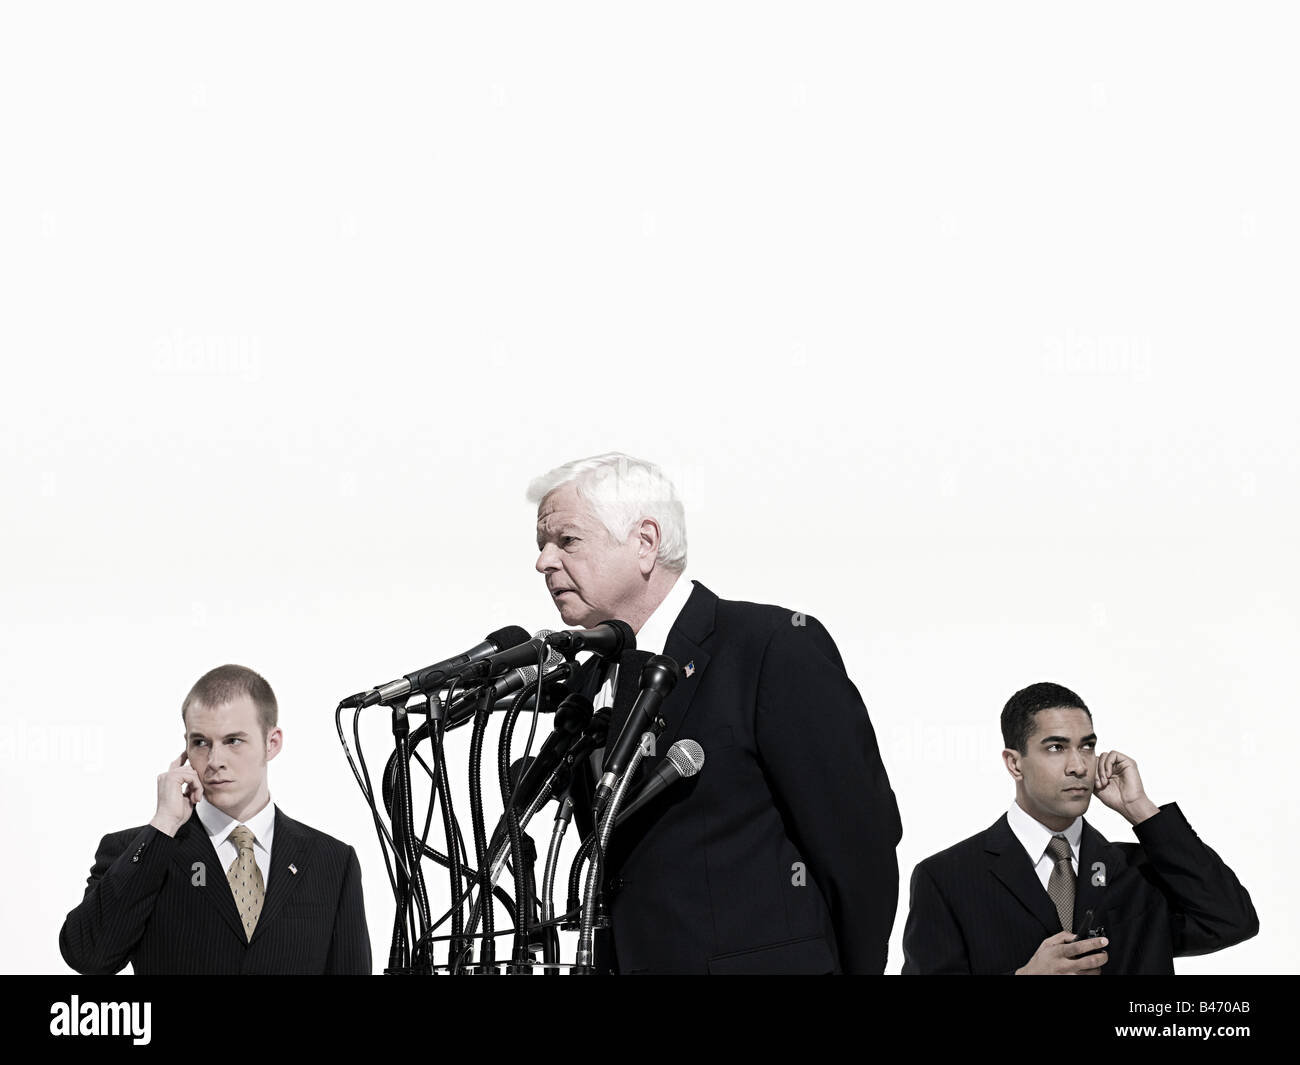 Politician and bodyguards Stock Photo